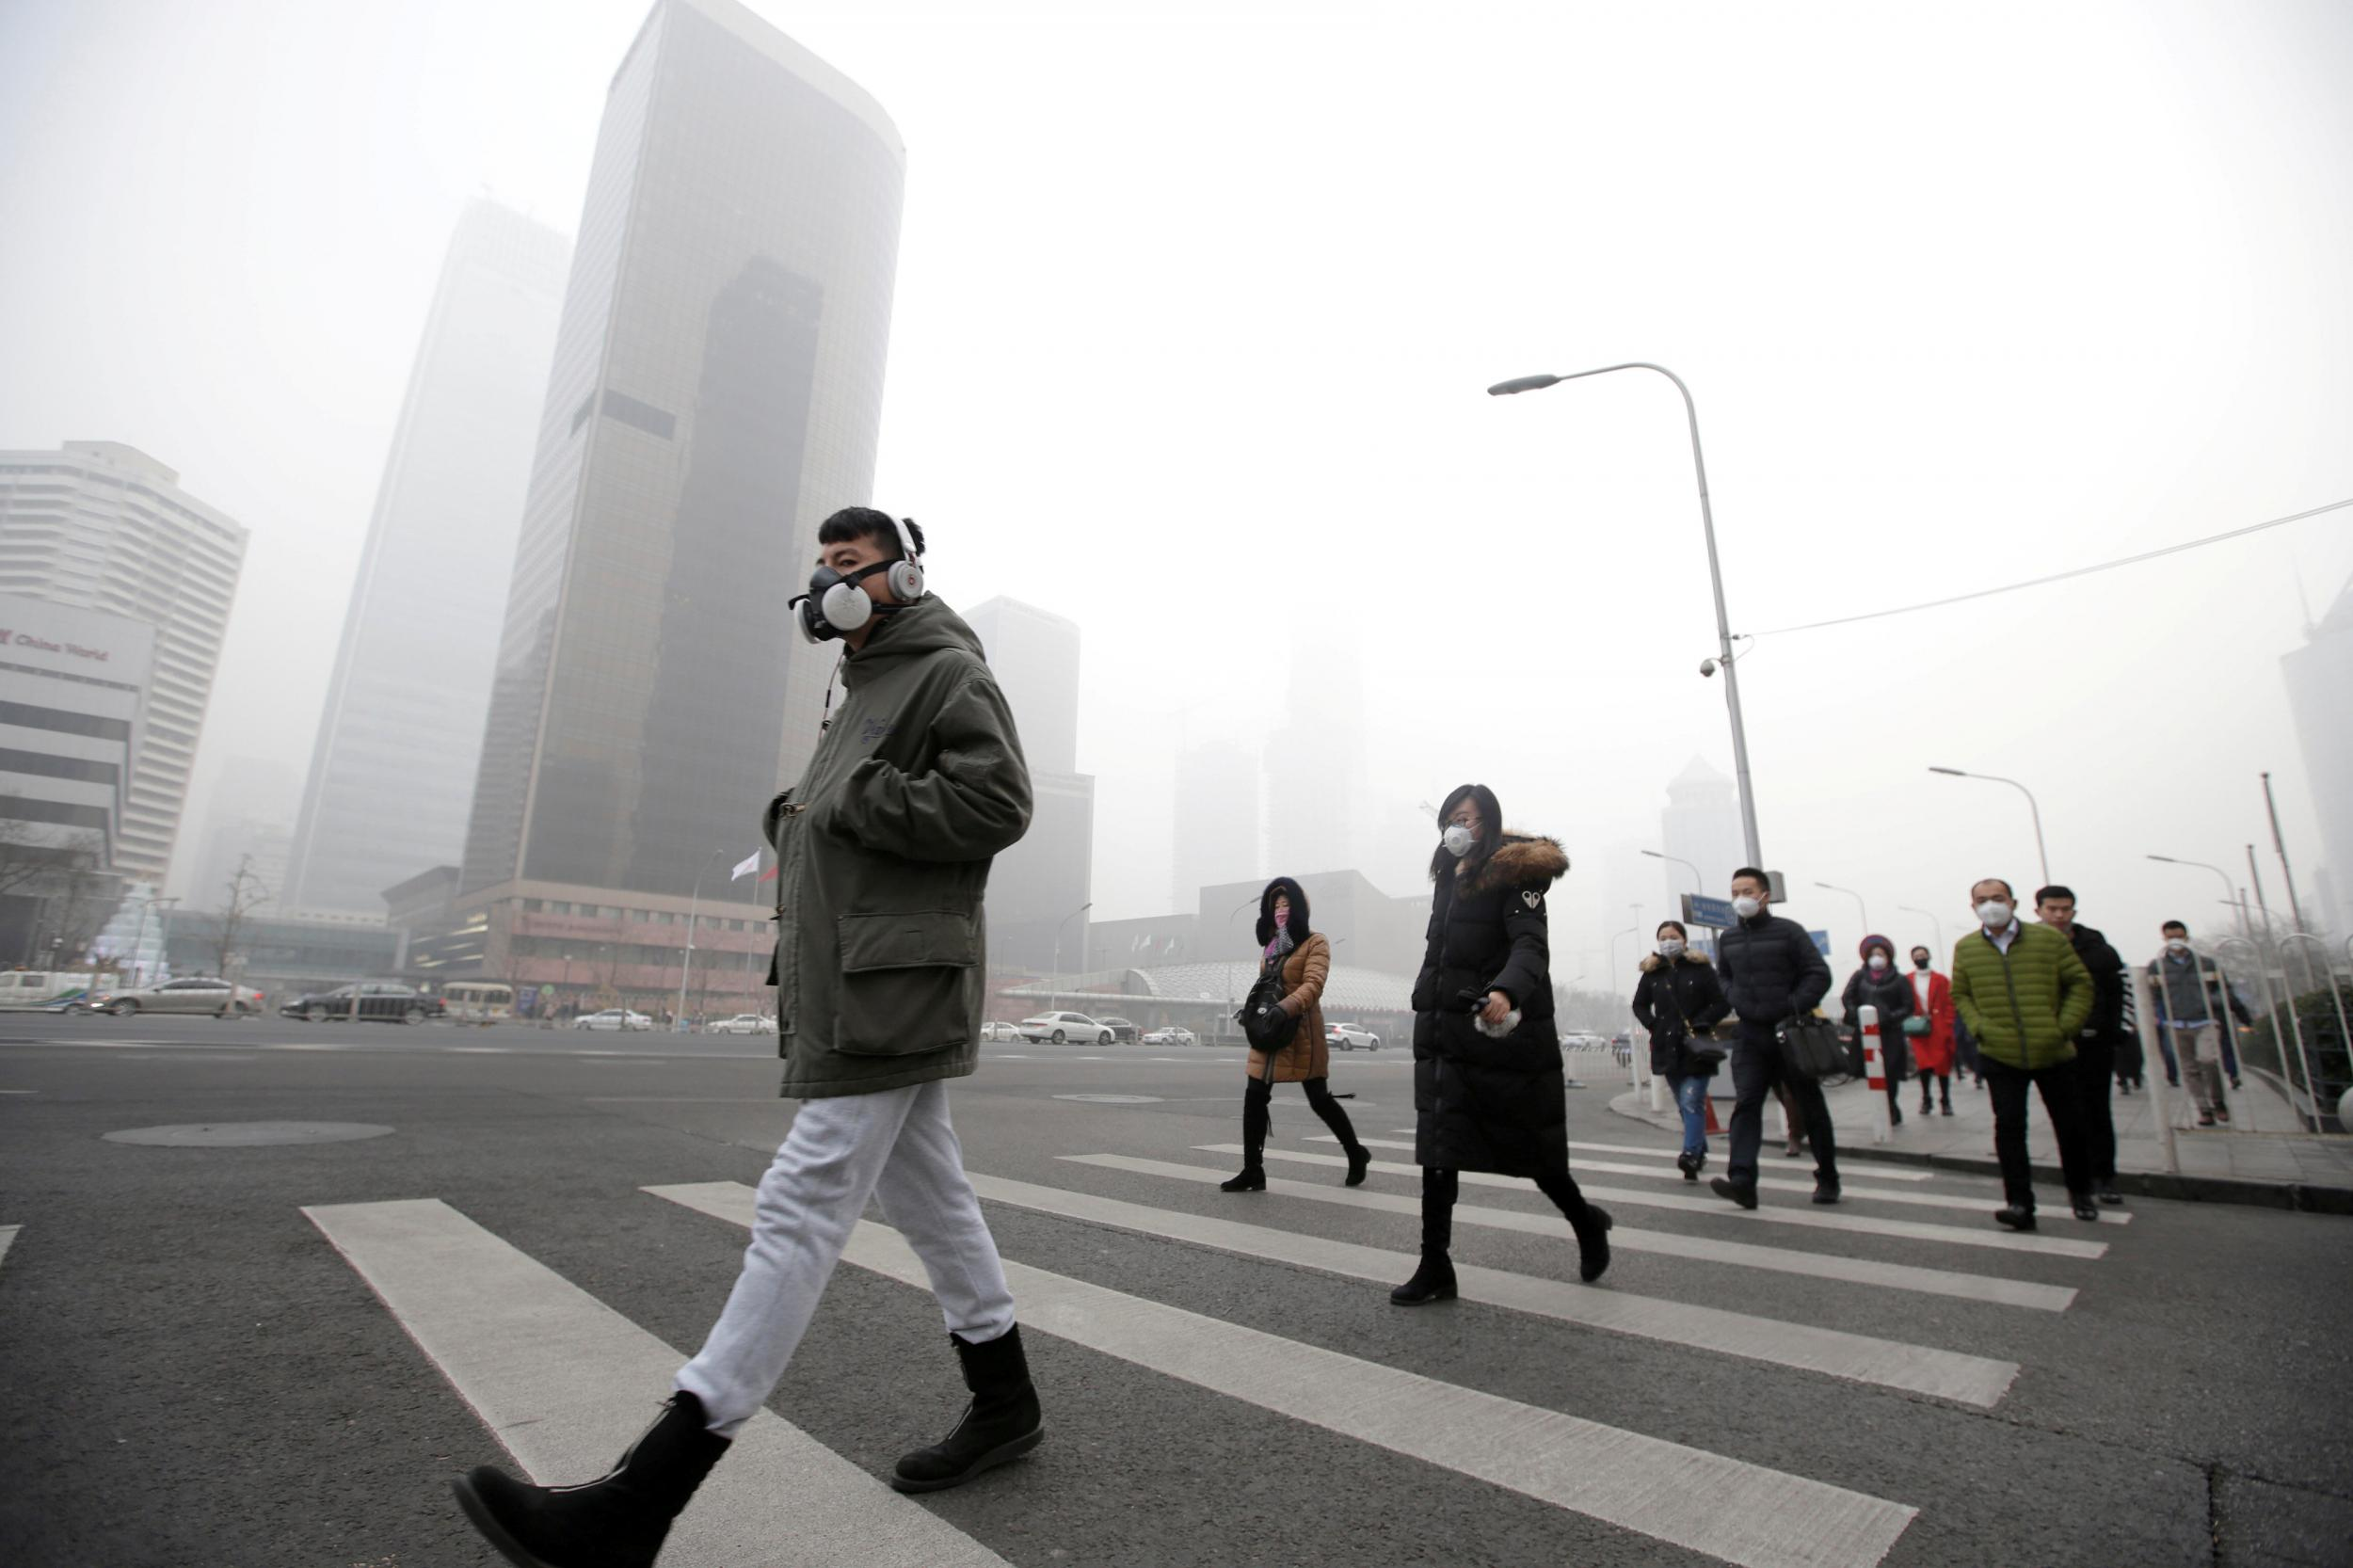 Air pollution puts city residents in bad mood, study suggests